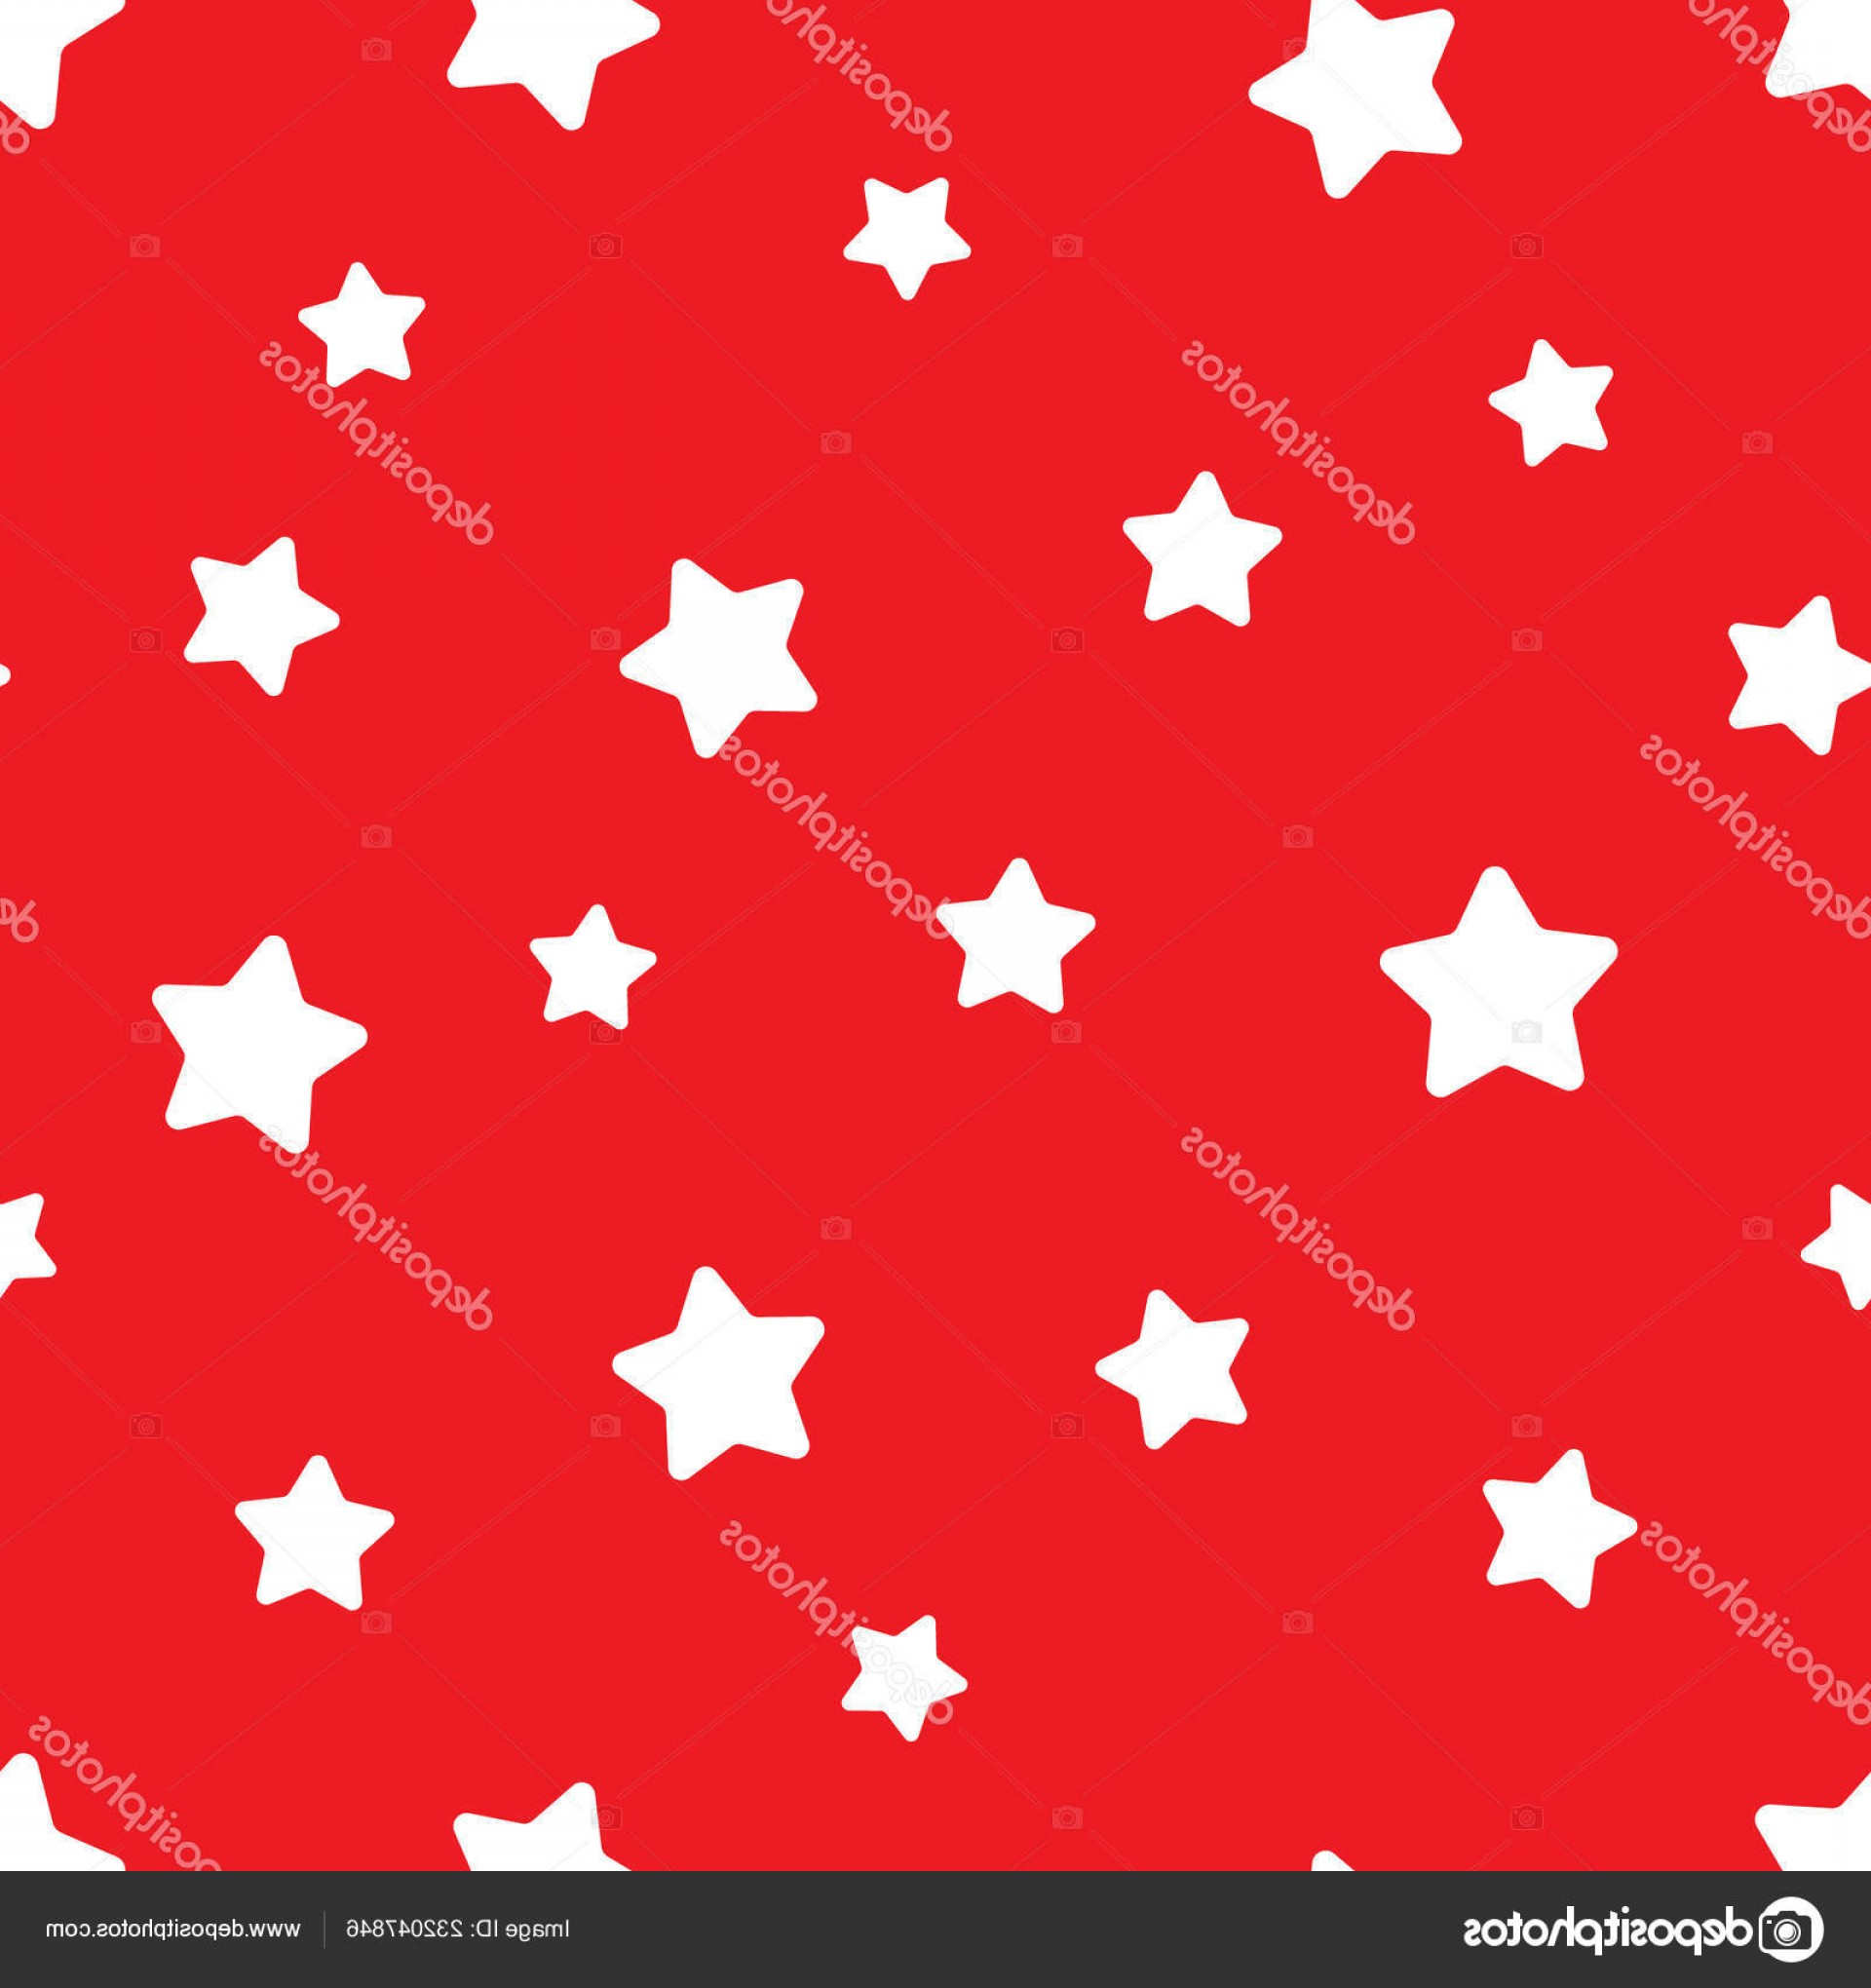 Vector-Based Christmas: Stock Illustration Vector Seamless Stars Pattern Star